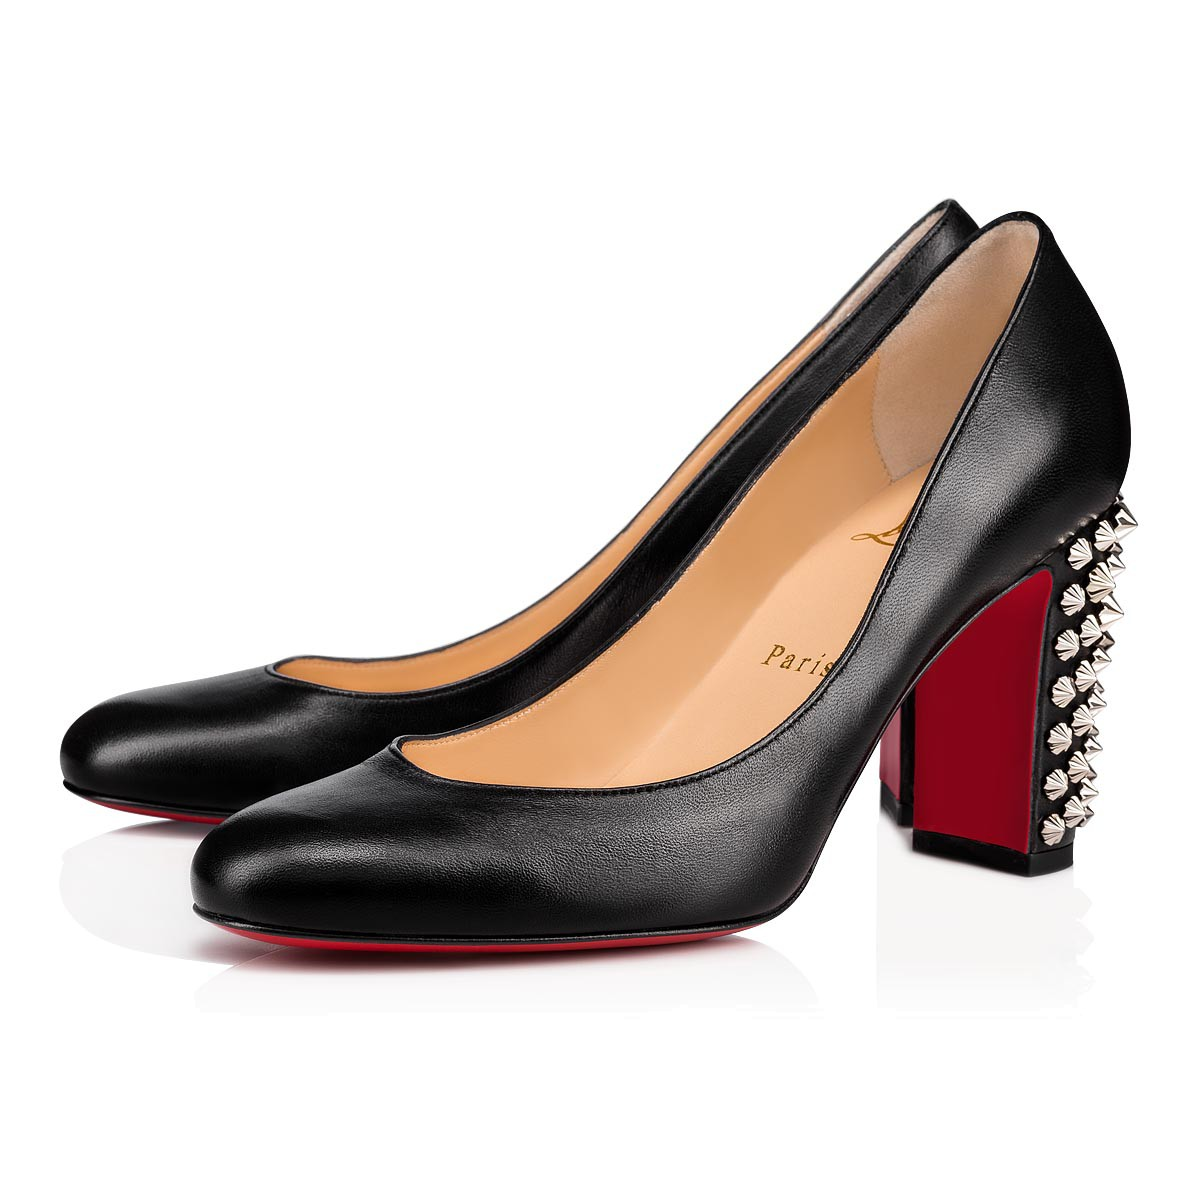 Shoes - Marimalus - Christian Louboutin